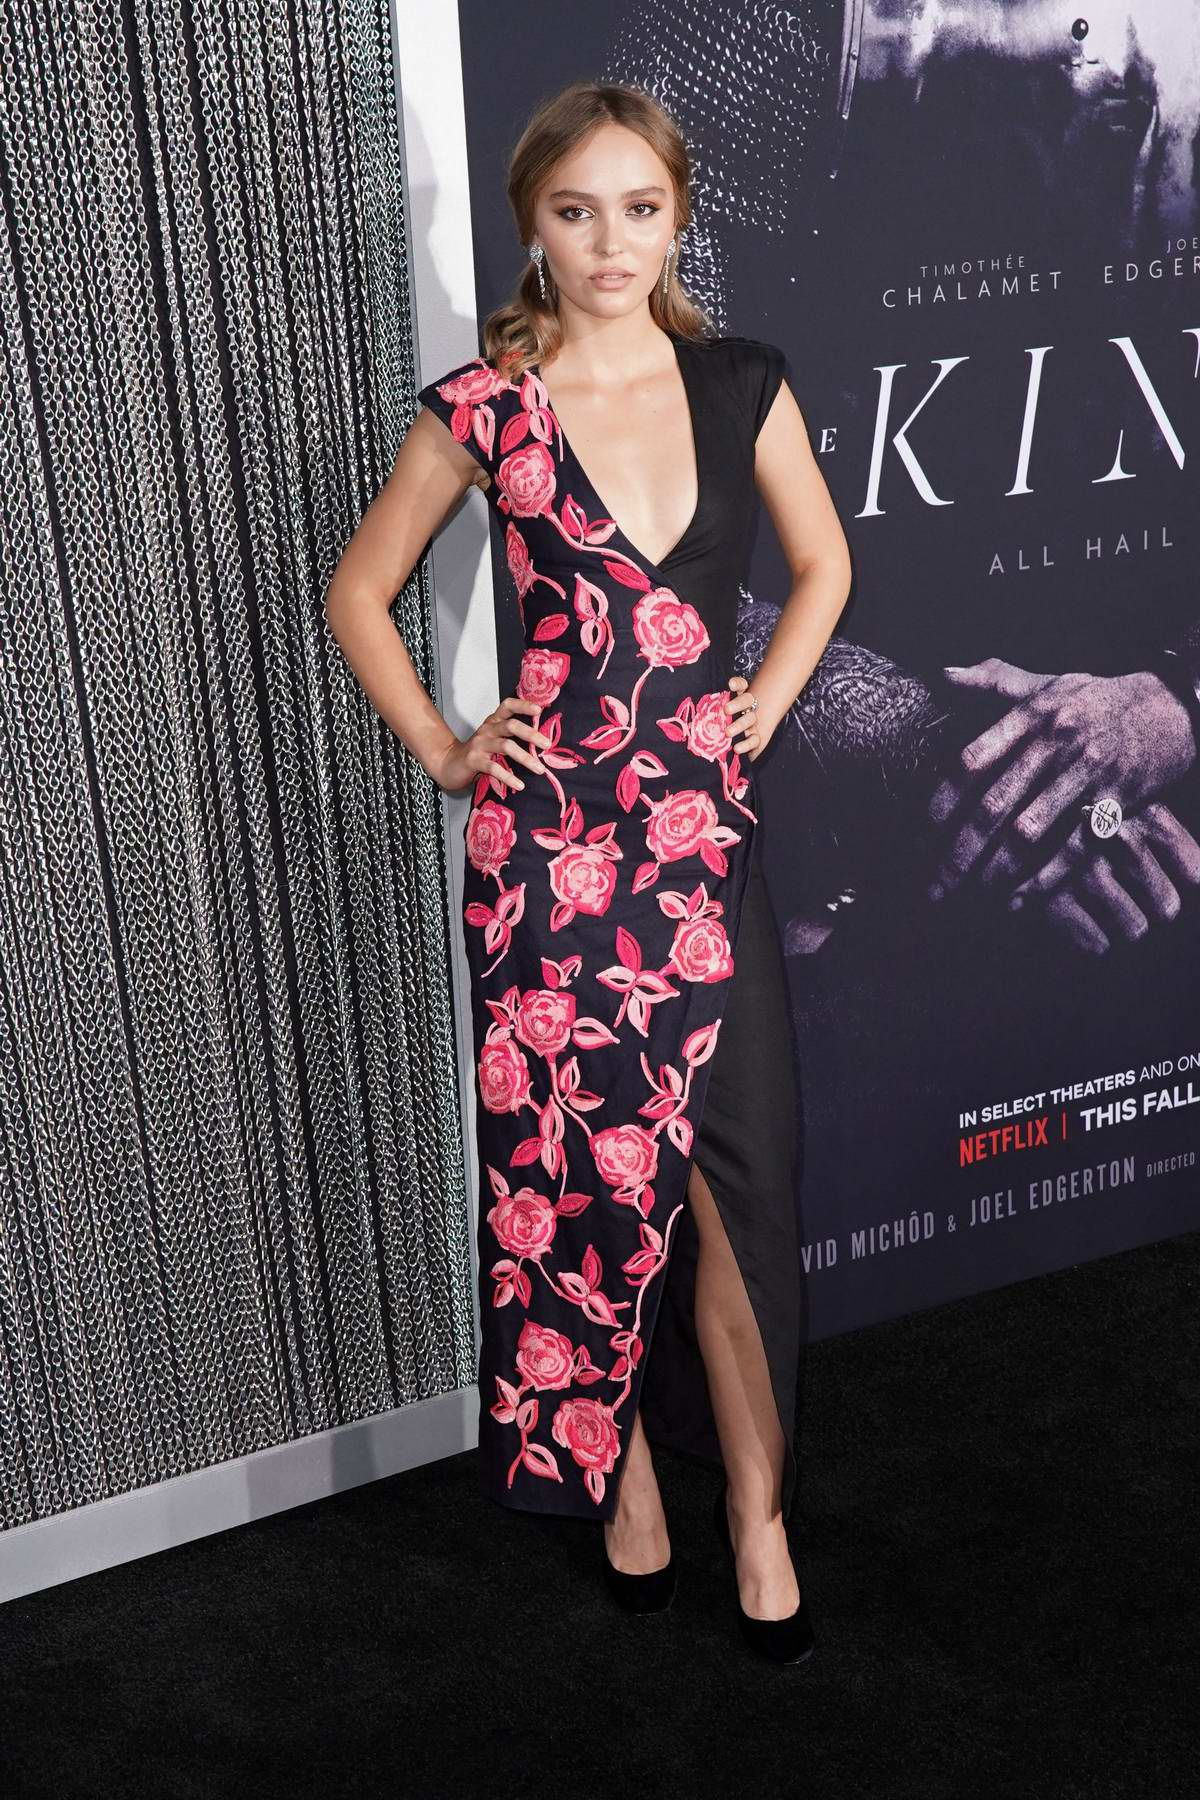 Lily-Rose Depp attends 'The King' film premiere at SVA Theater in New York City